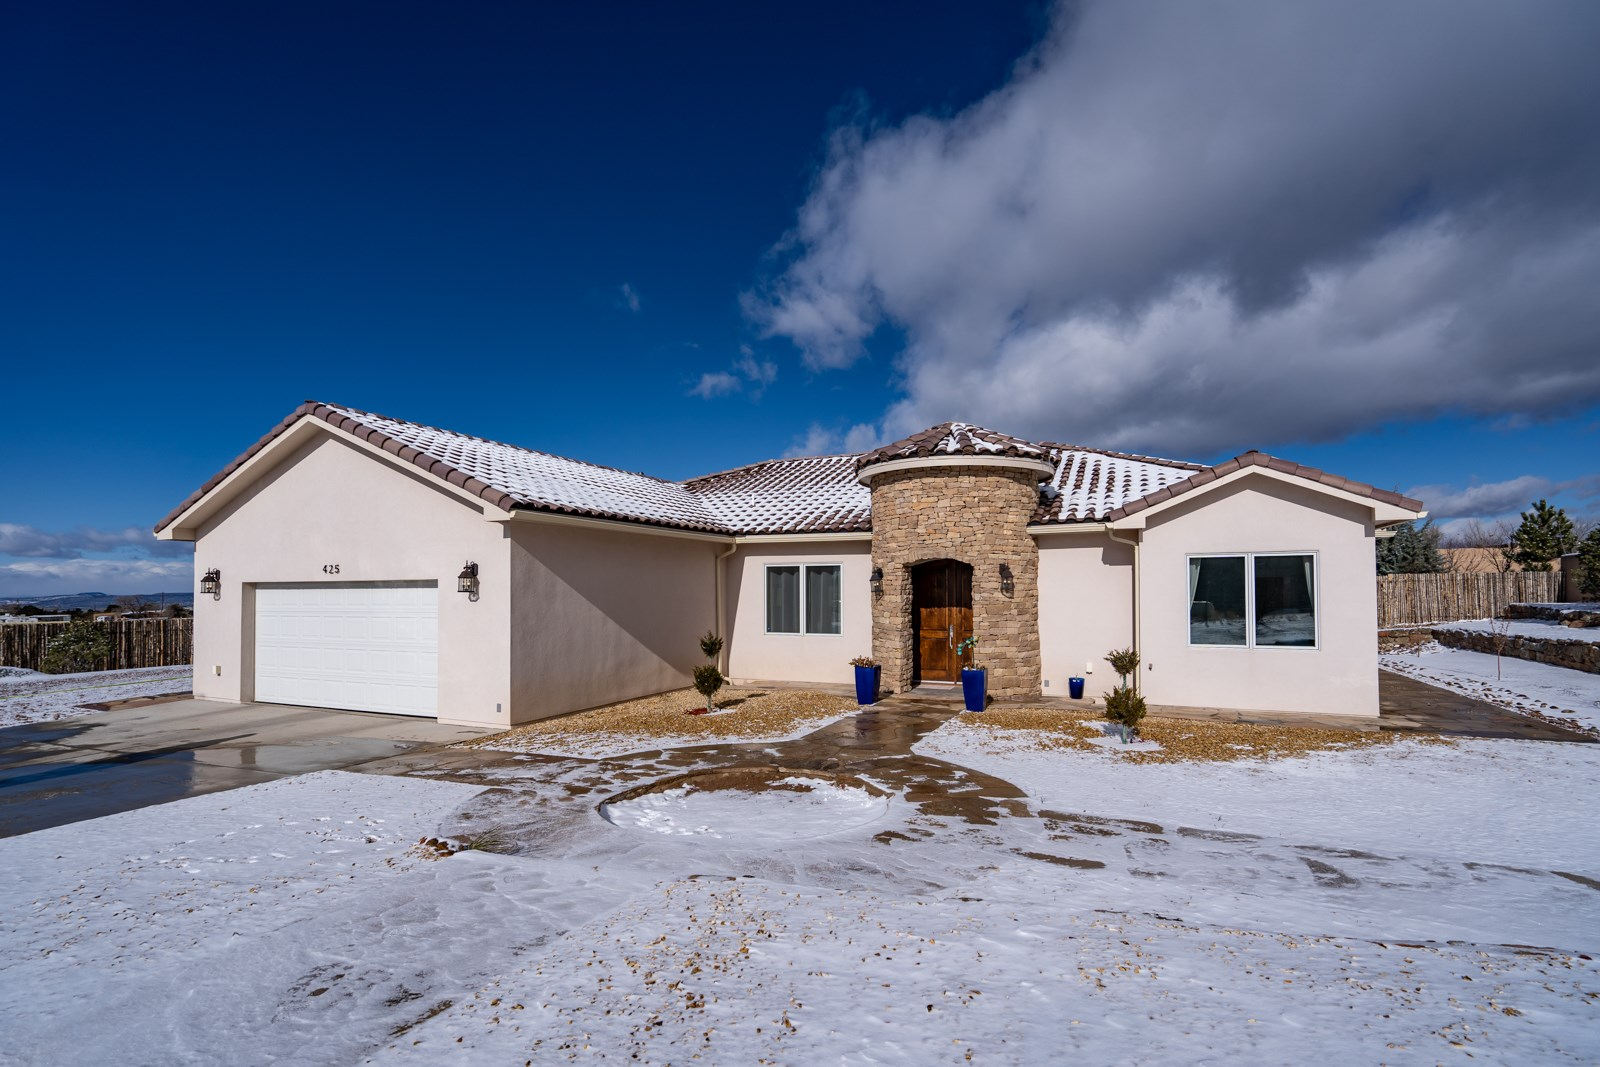 LOOKING FOR A DIAMOND?? Look no further!! This centrally located gem in the Brunn School Road Subdivision is a certified Gold, by Build Green NM, home built in 2017 and is move-in ready!!! This 3 bed, 2.5 bath home features an open floor plan with premium upgrades. Custom cabinets, quartz countertops, stainless steel appliances, stacked marble backsplash, a walk-in pantry and an island that seats 4 furnishes the kitchen. Master bath suite includes his and hers sinks separated by a custom soak tub and walk-in marble shower. Guest bedrooms are attached by a Jack and Jill bath suite finished with marble and quartz. Porcelain tile flooring covers the interior of the home. Well maintained stucco exterior and pitched Spanish Tile roof. Heating and cooling sources include in-floor radiant heat as well as heated forced air and refrigerated central air conditioning. Additional features include oversized 2 car garage with finished floor, Xeriscaped lot with cherry, peach, apple, pear, and pine trees. Trees are watered through a drip system fed by a 1000 gallon cistern. SCHEDULE YOUR SHOWING ASAP! THIS HOME WONT LAST LONG!